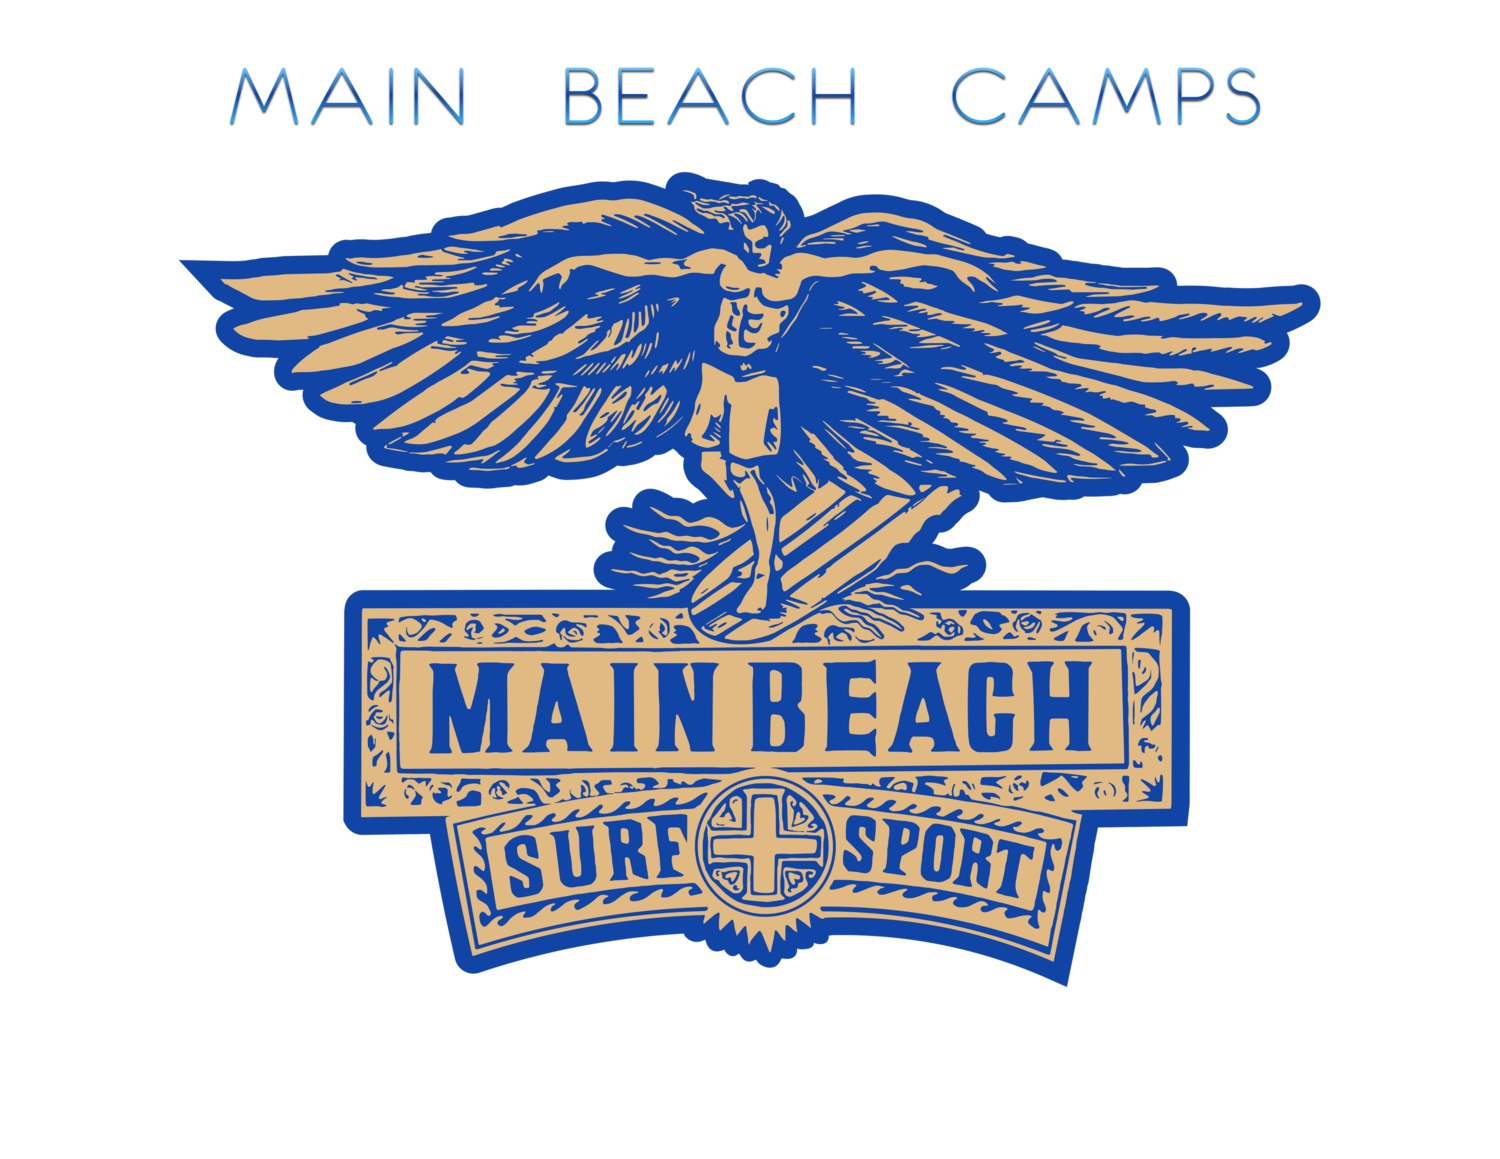 Hamptons + MainBeach + East Hampton + Montauk + Surf Camp + Surf School